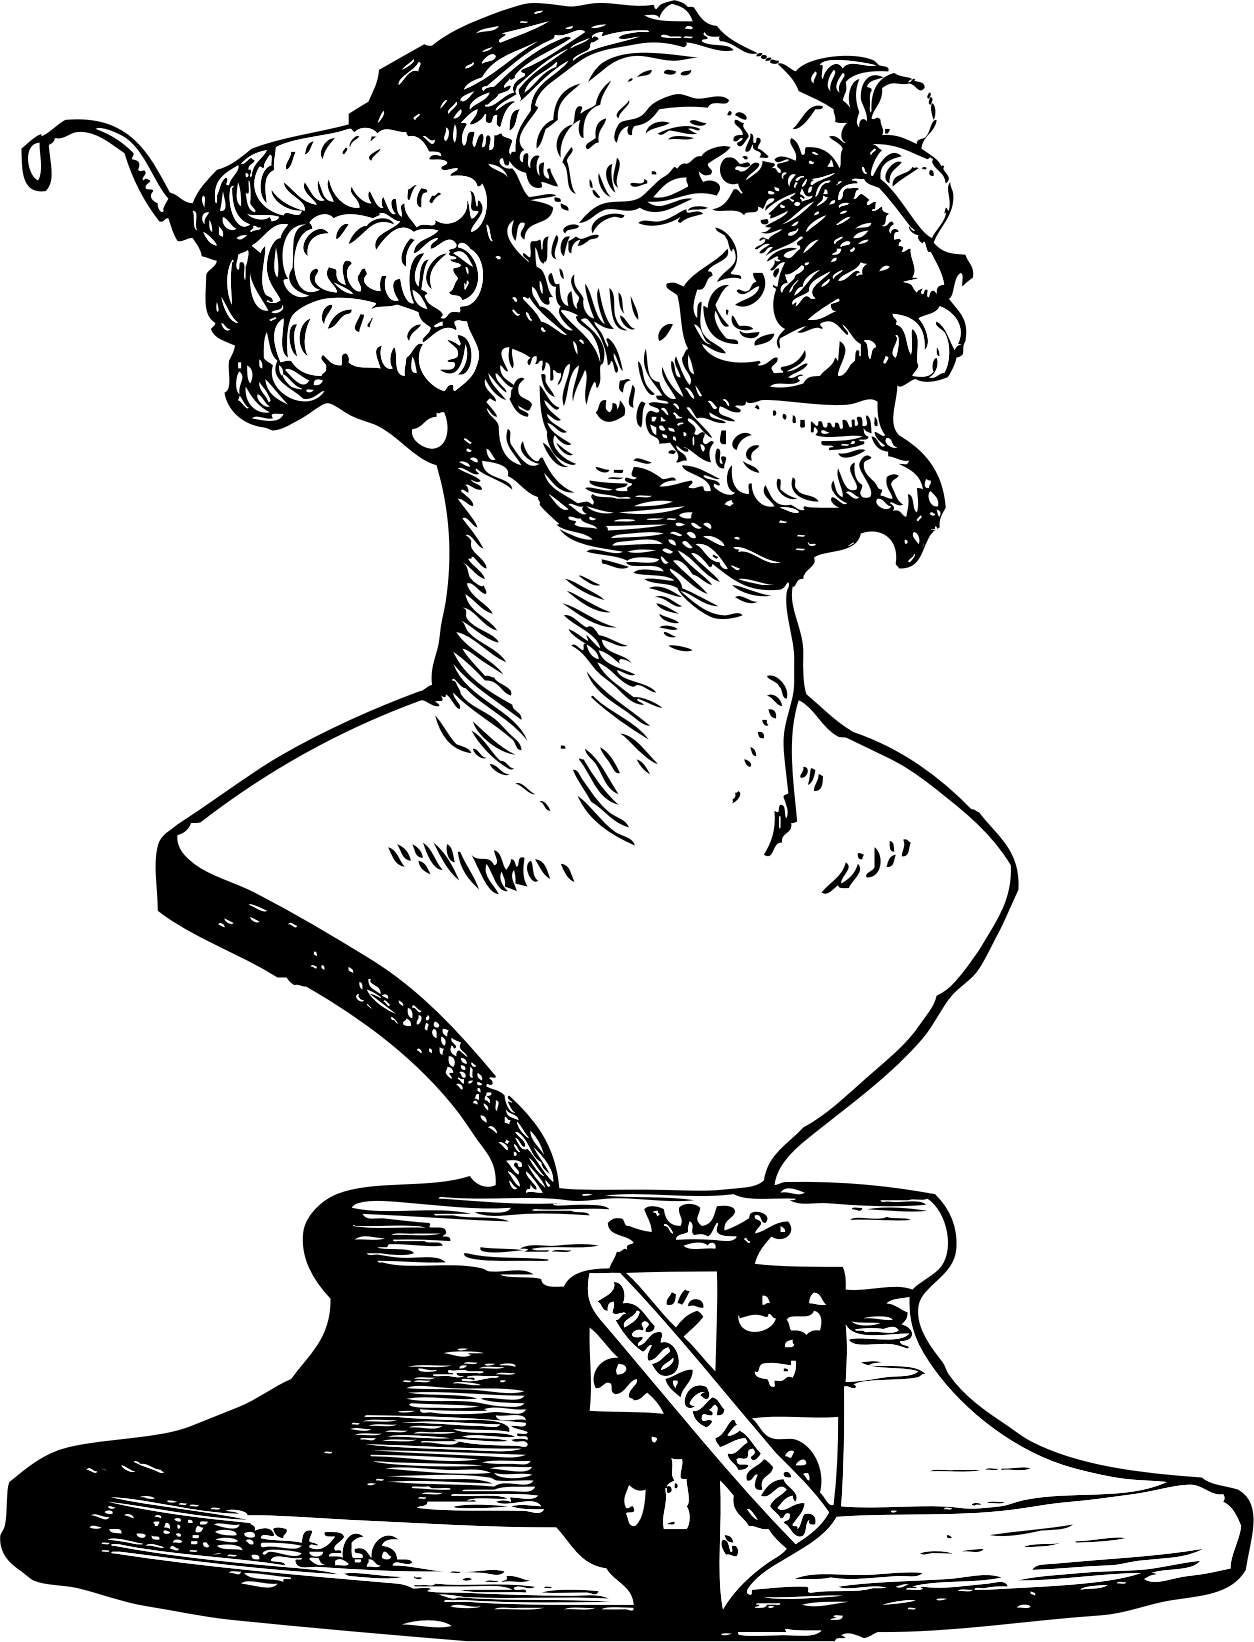 The bust of Baron von Munchausen by kinetoons